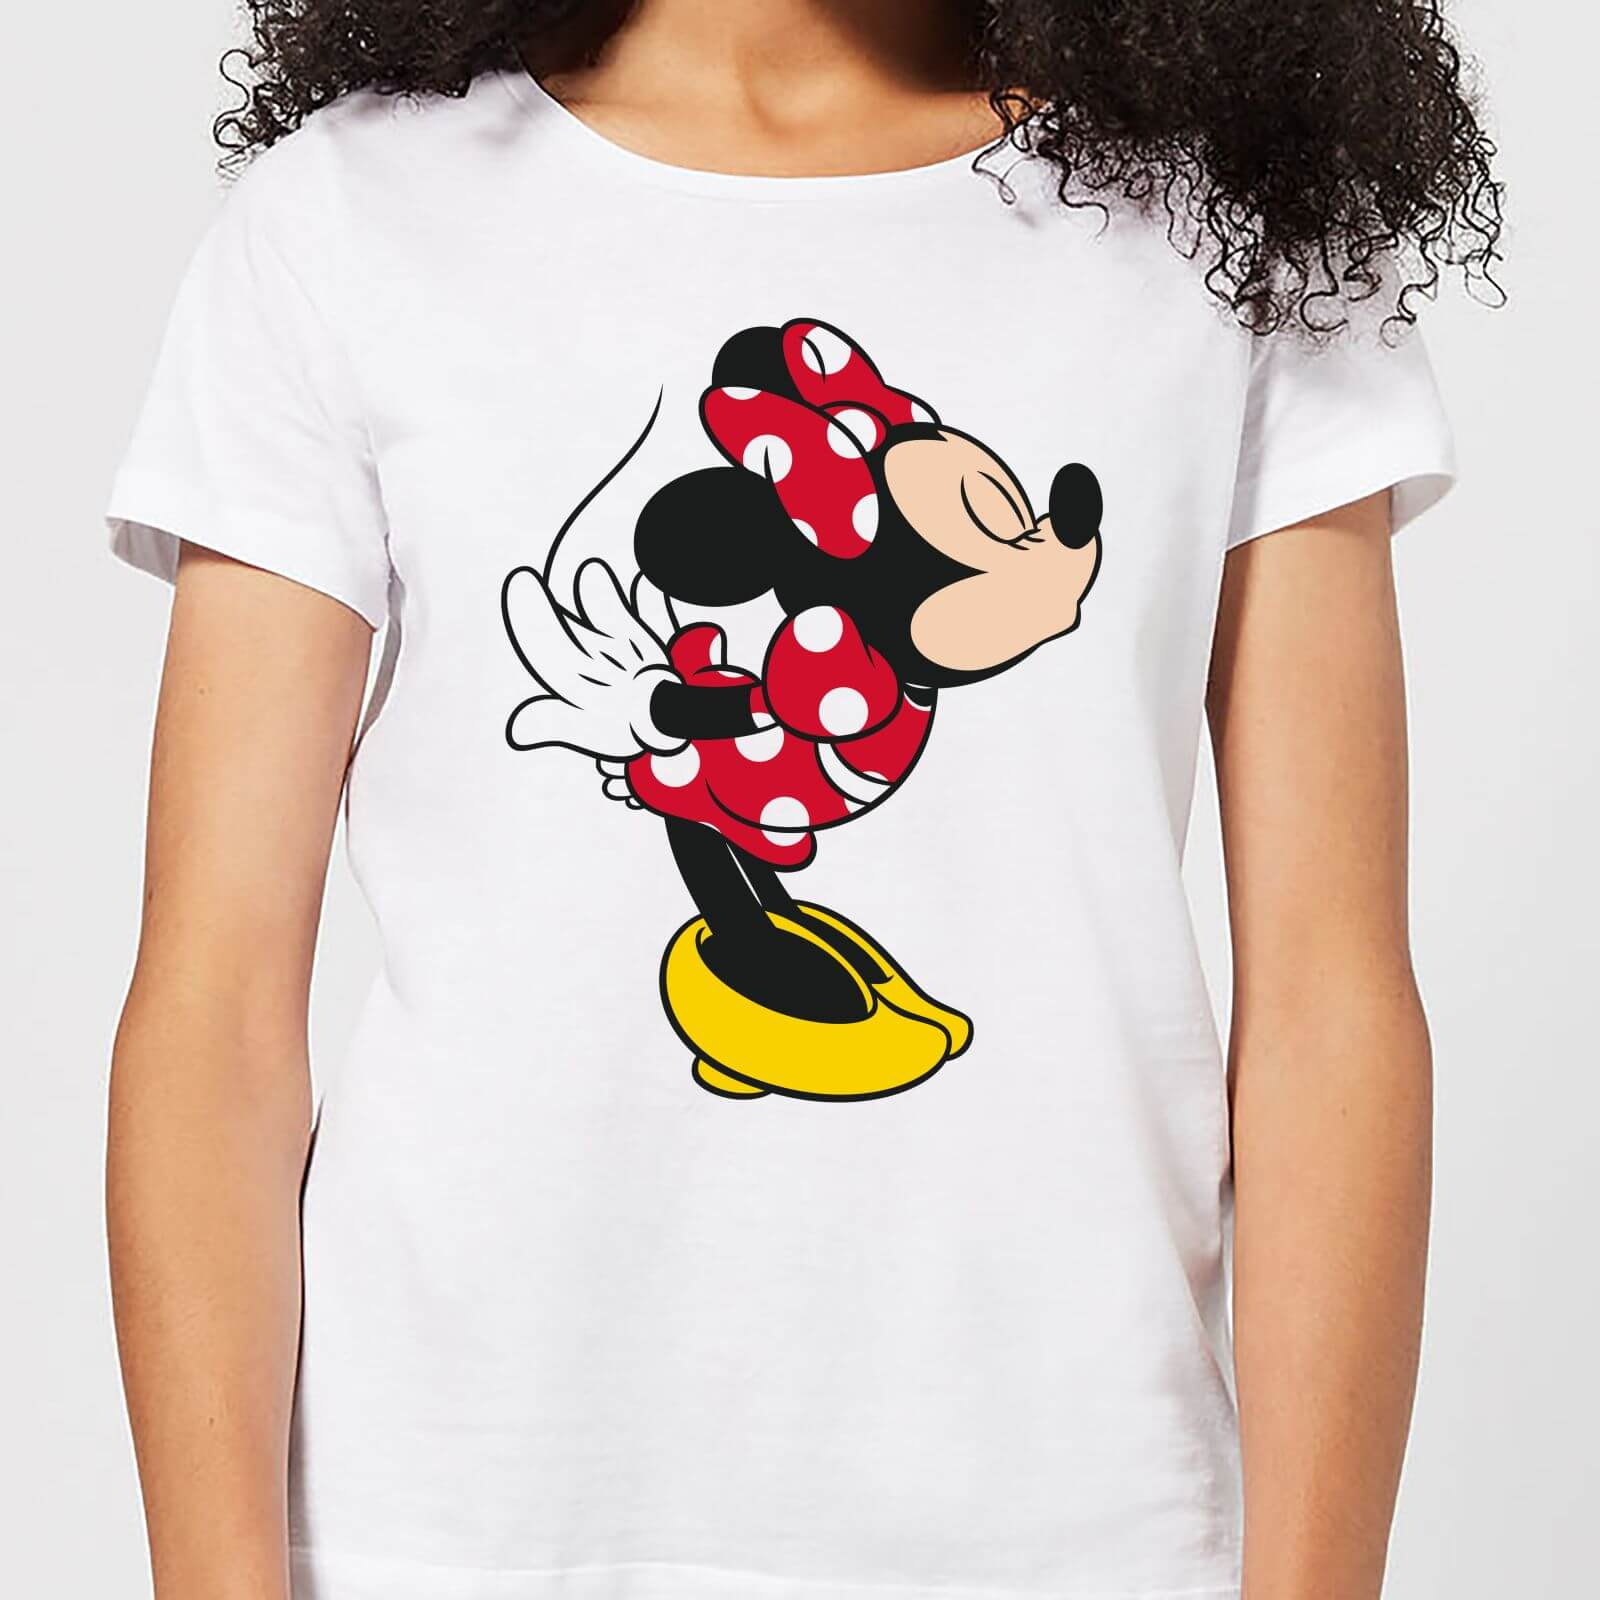 04abaa2a Disney Mickey Mouse Minnie Split Kiss Women's T-Shirt - White Clothing |  Zavvi